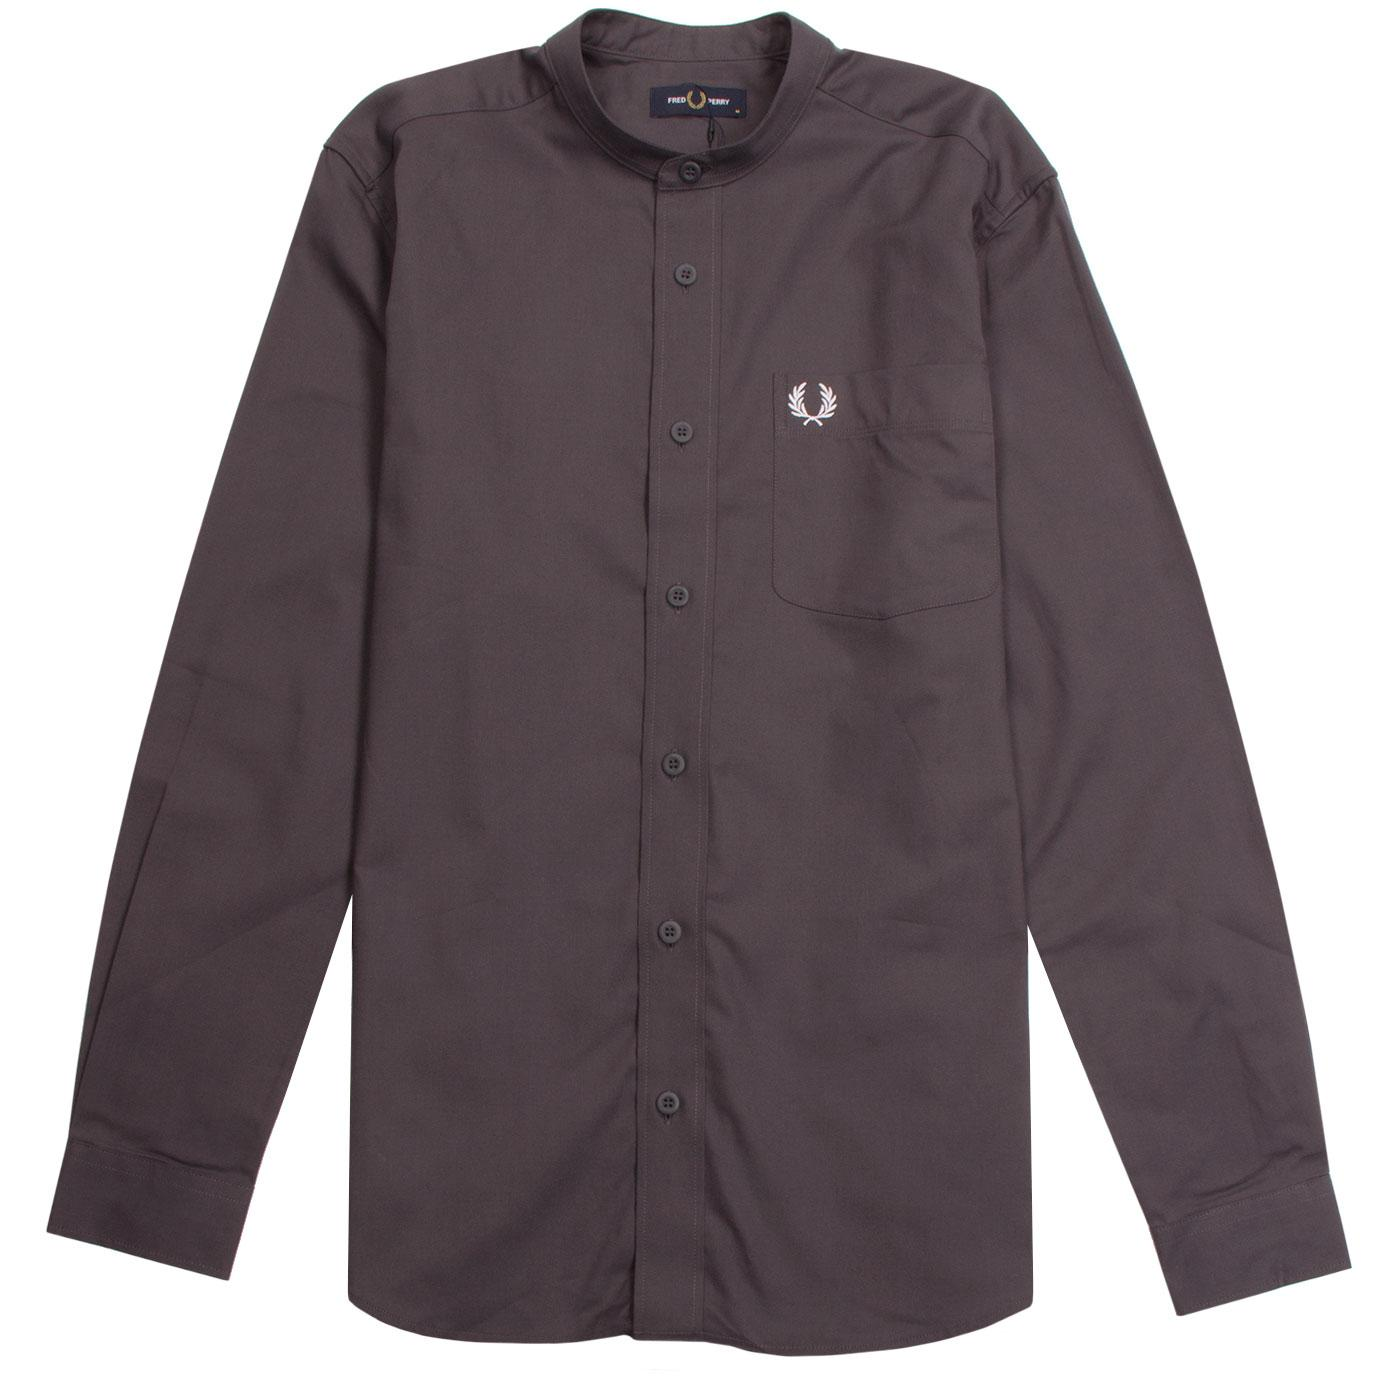 FRED PERRY Retro 60s Grandad Collar Oxford Shirt C